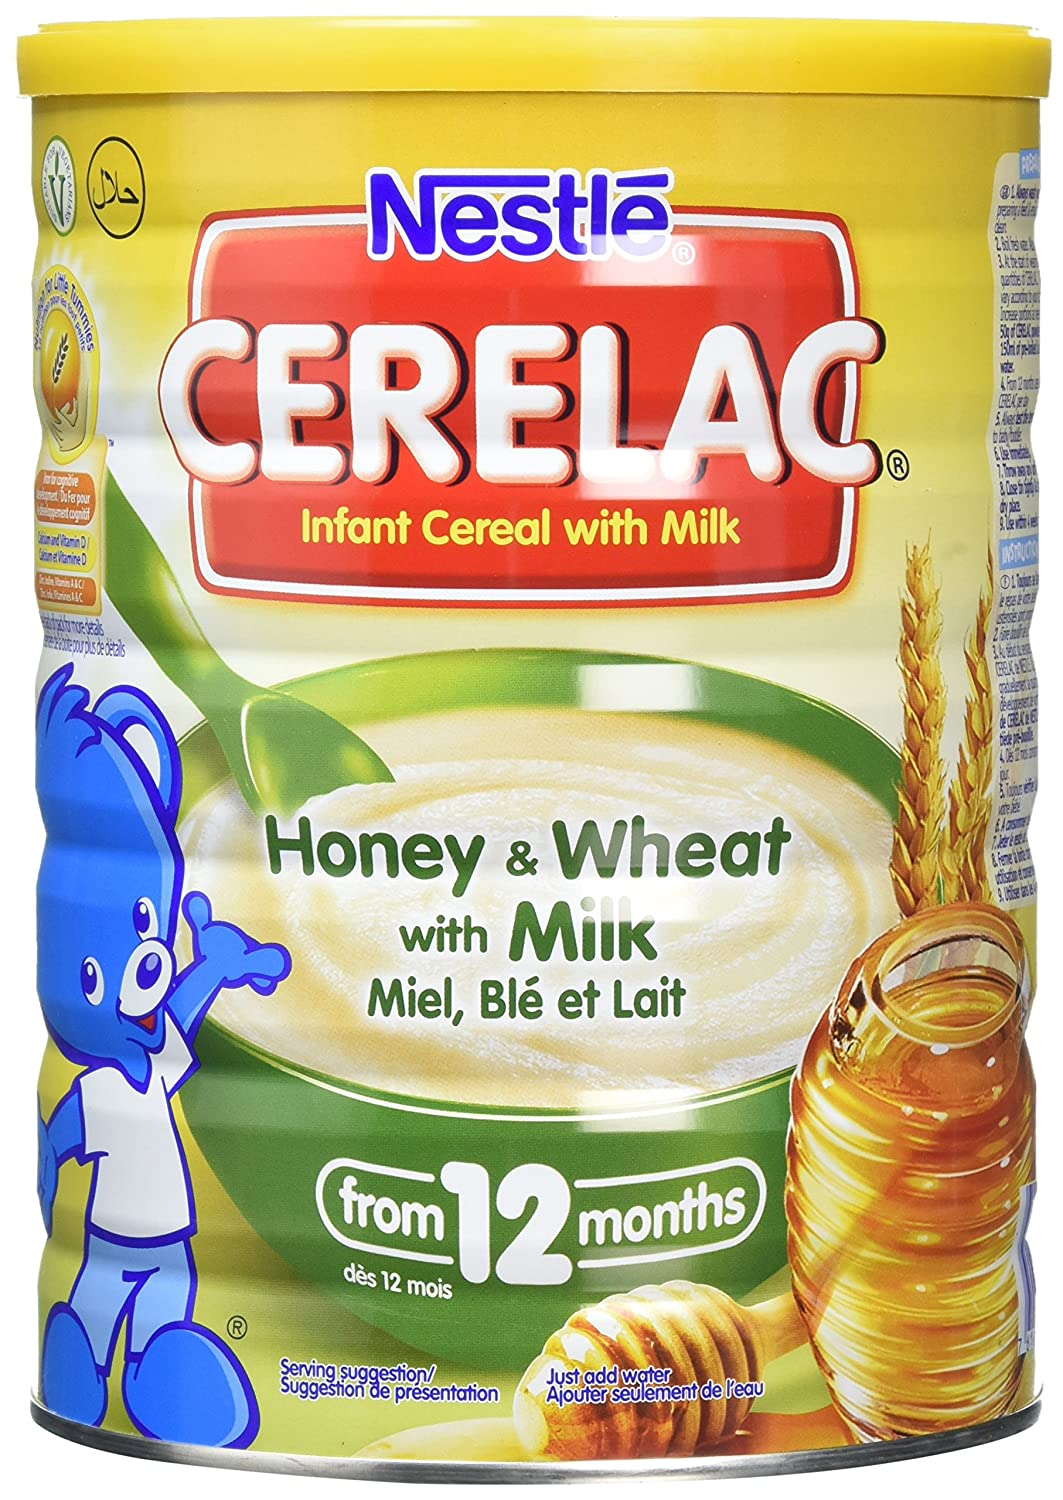 Nestlé CERELAC Wheat and Honey with Milk Infant Cereal 1kg, 12 months+ (Pack of 2) A1B150